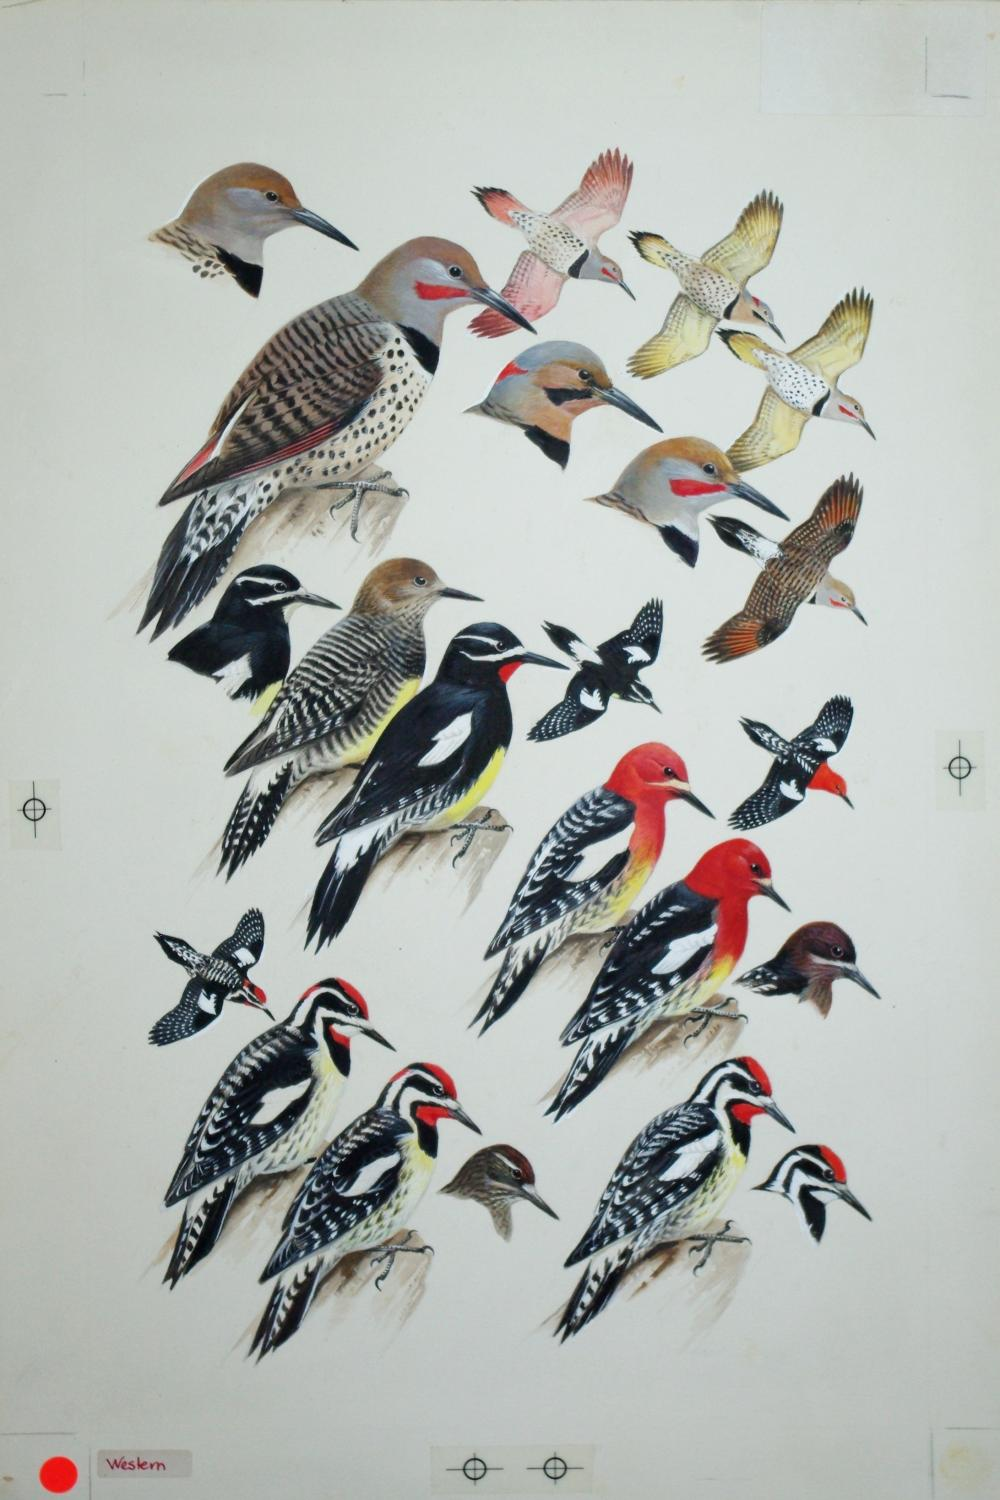 Woodpeckers, Flickers, Sapsuckers: Roger Tory Peterson